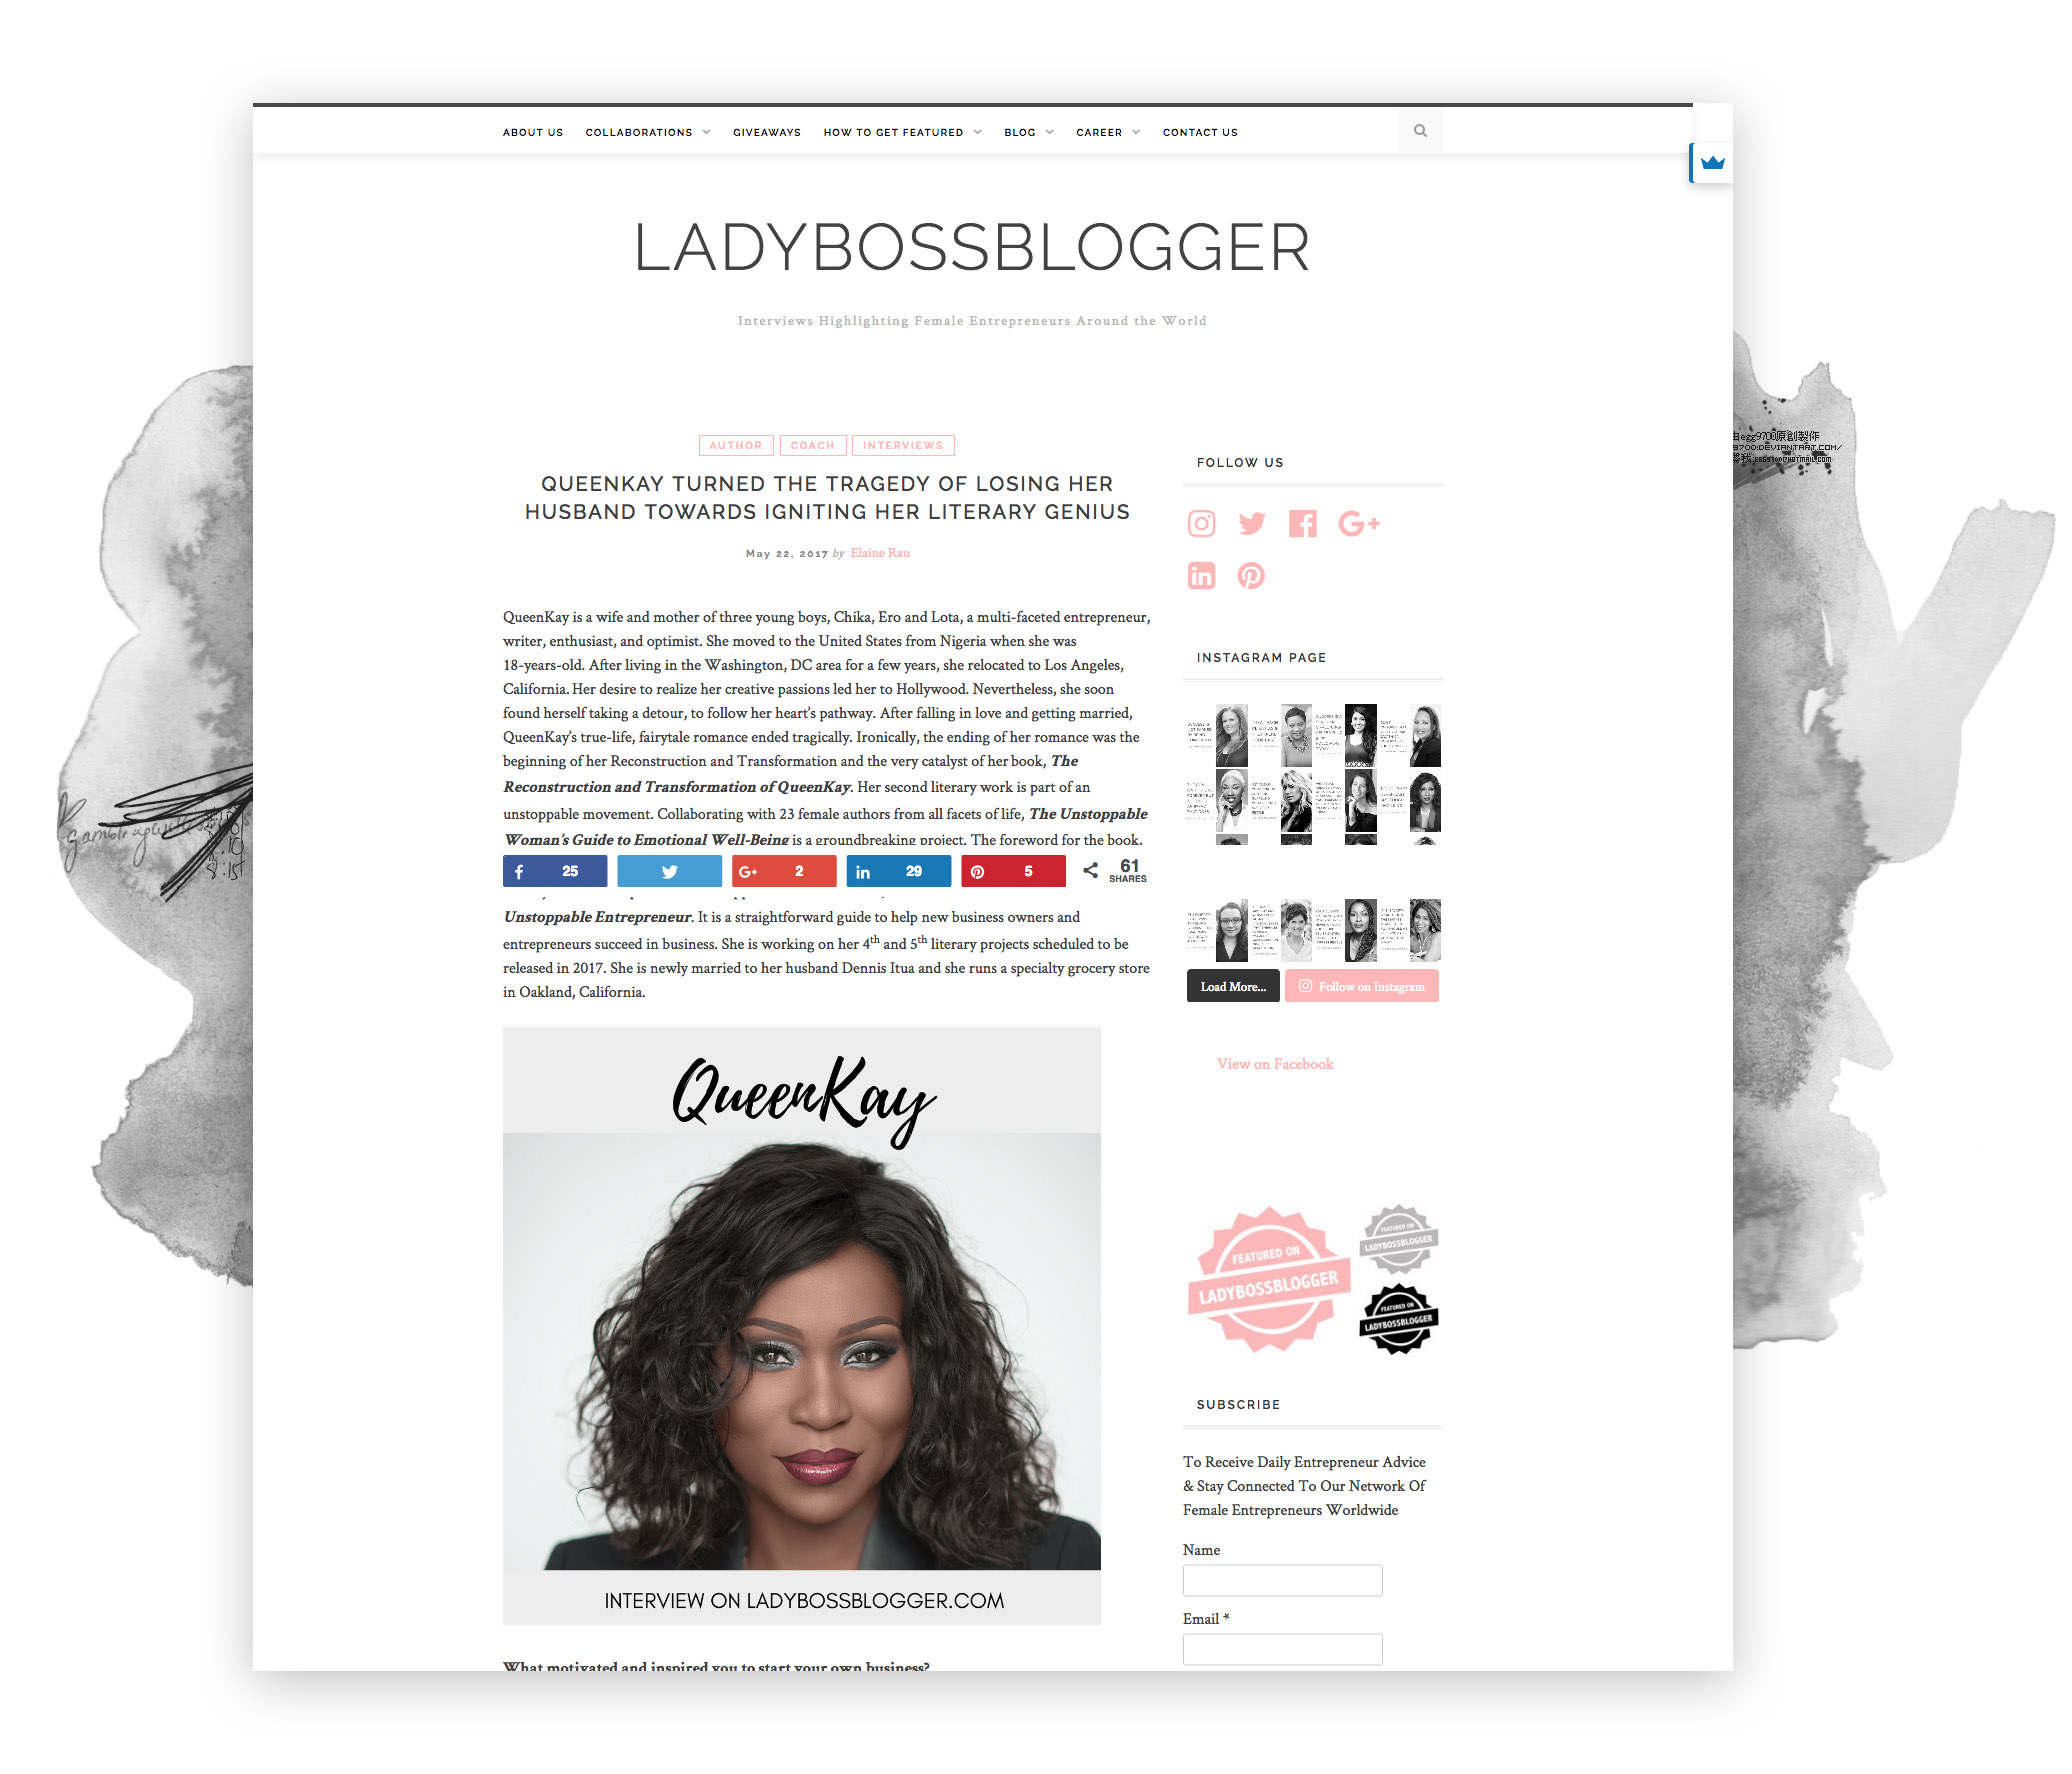 lady boss blogger interview page